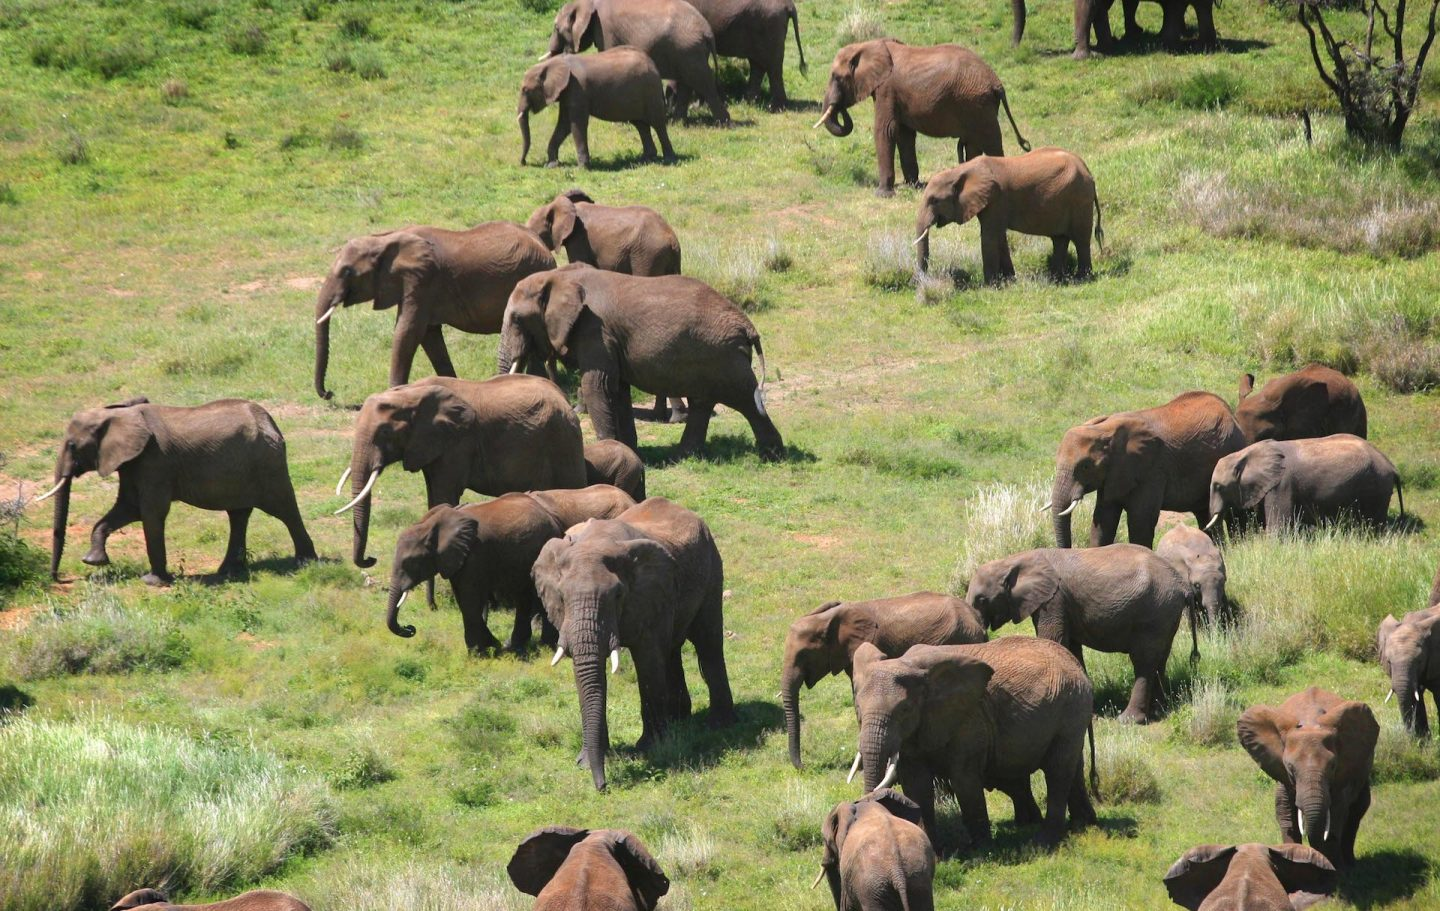 Elephants Roaming on Lewa Wildlife Conservancy © Abbie Trayler-Smith - Telegraph Christmas Charity Appeal